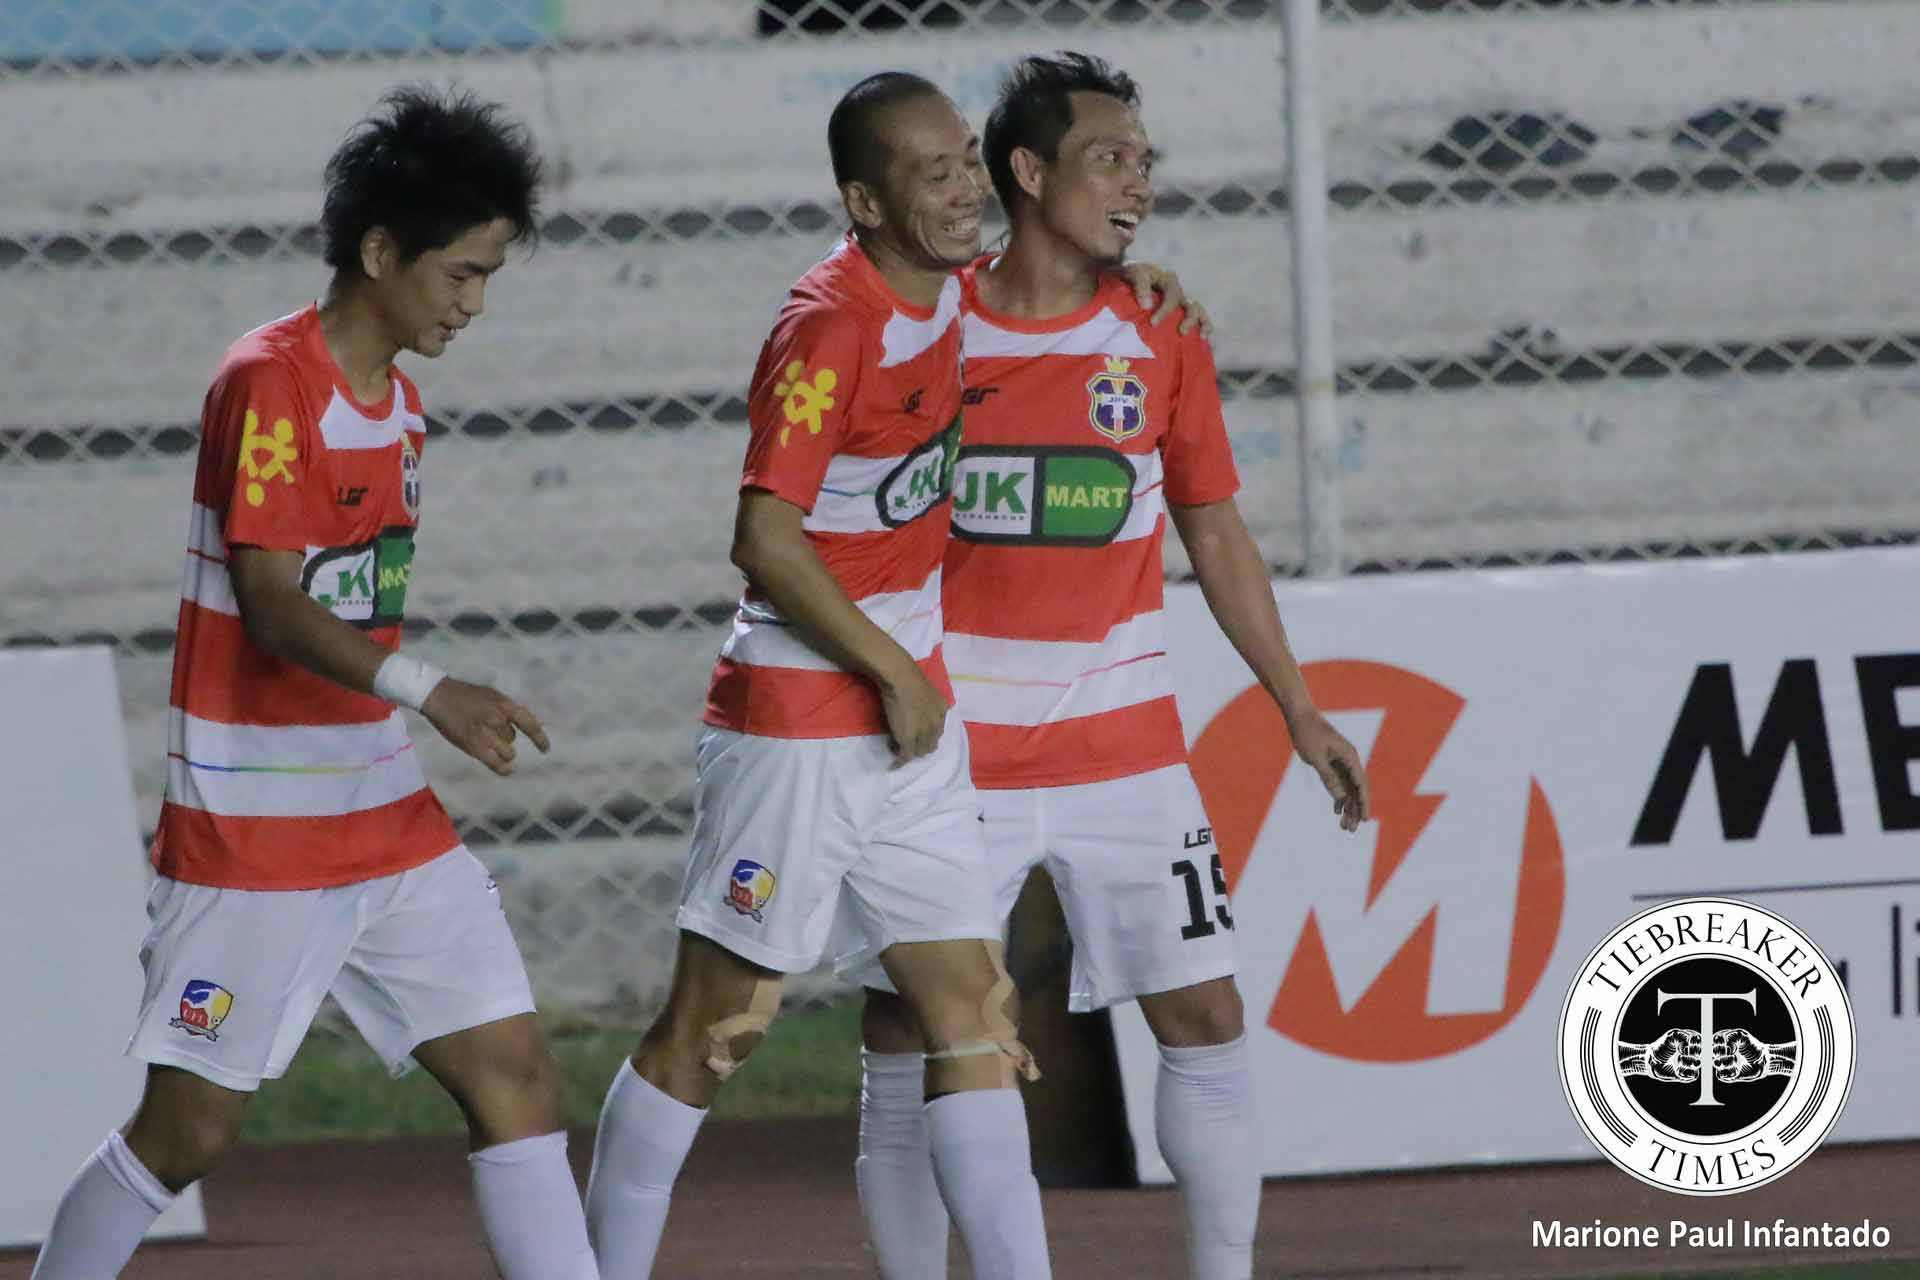 Tiebreaker Times JP Voltes topple Green Archers United in gritty UFL Cup-Plate semifinal clash Football News UFL  United Football League Philippines UFL Cup 2016 JP Voltes FC Green Archers United FC